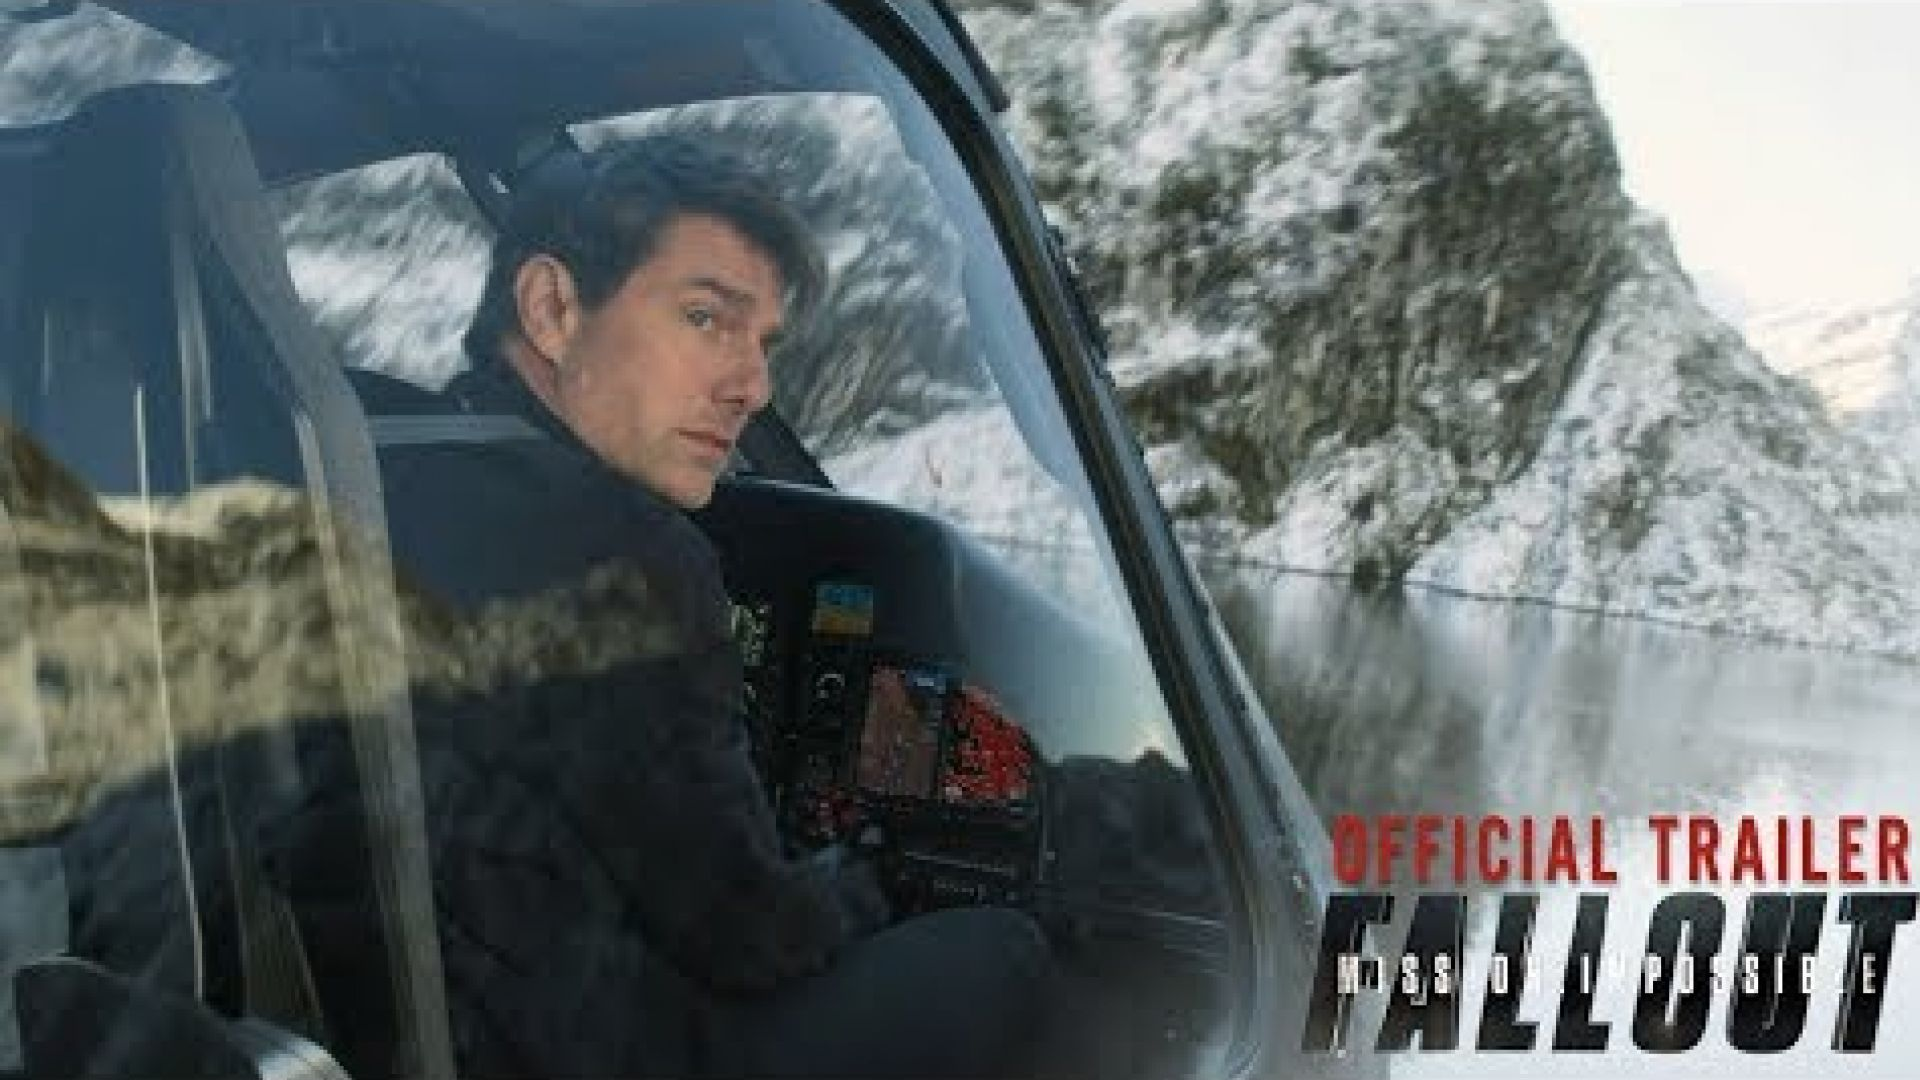 'Mission: Impossible - Fallout' Full Trailer Paramount Pictu